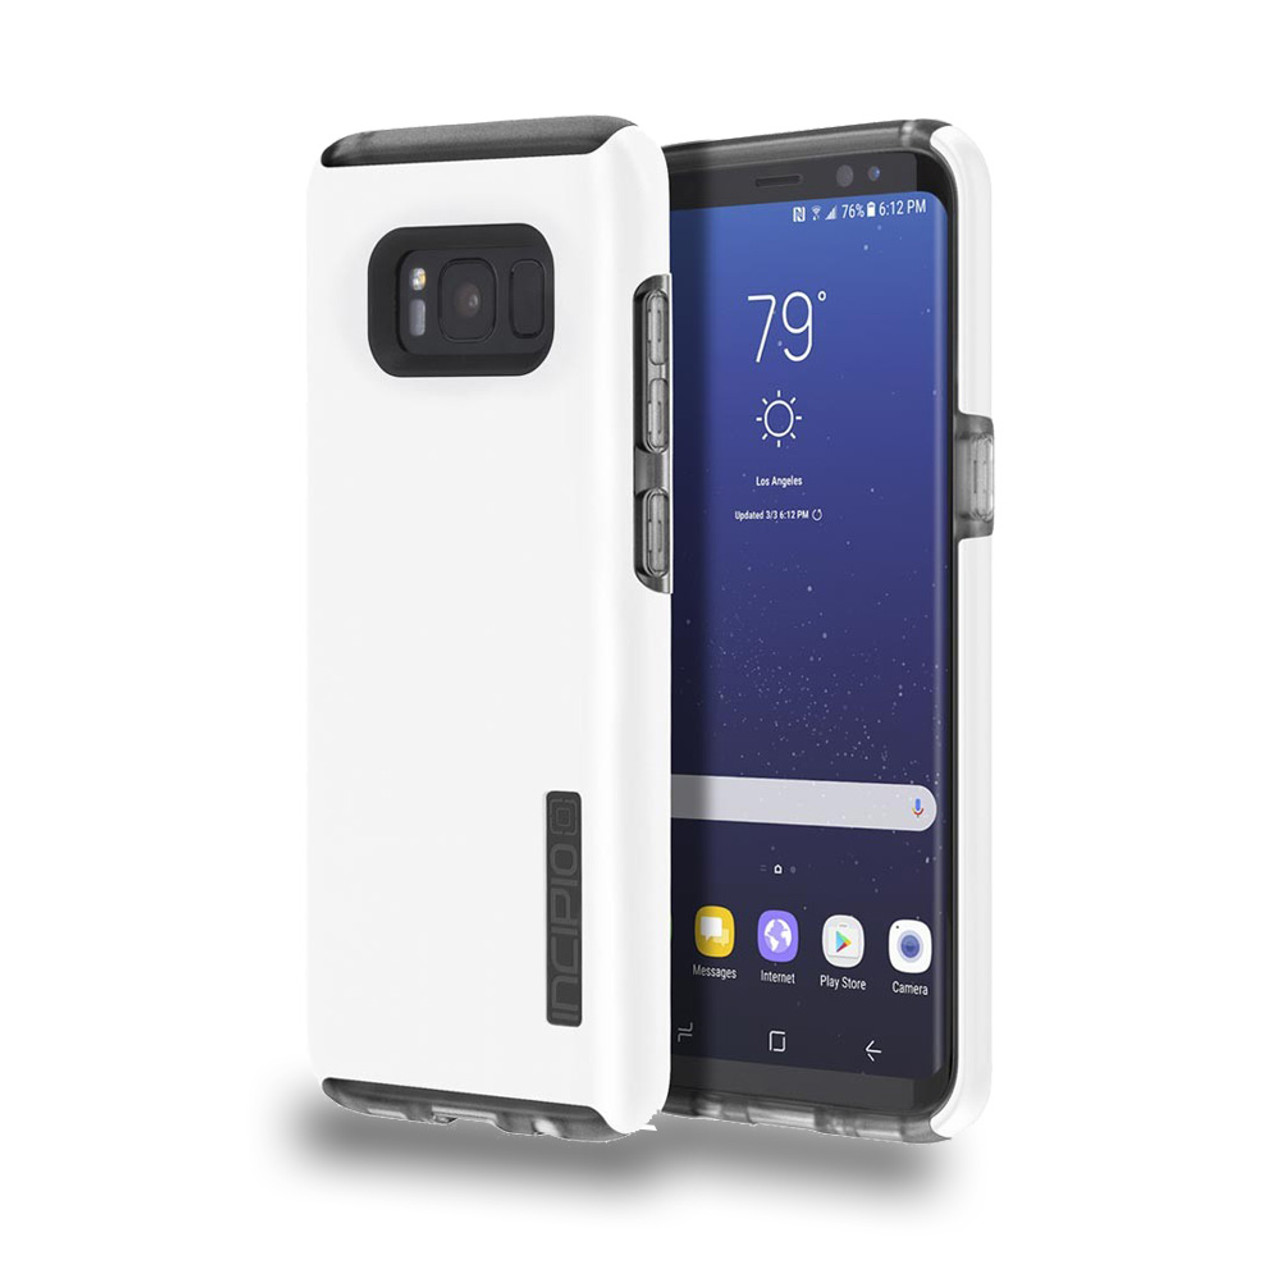 reputable site 5bfdd 87135 INCIPIO - DualPro Case for Samsung Galaxy S8 Iridescent White